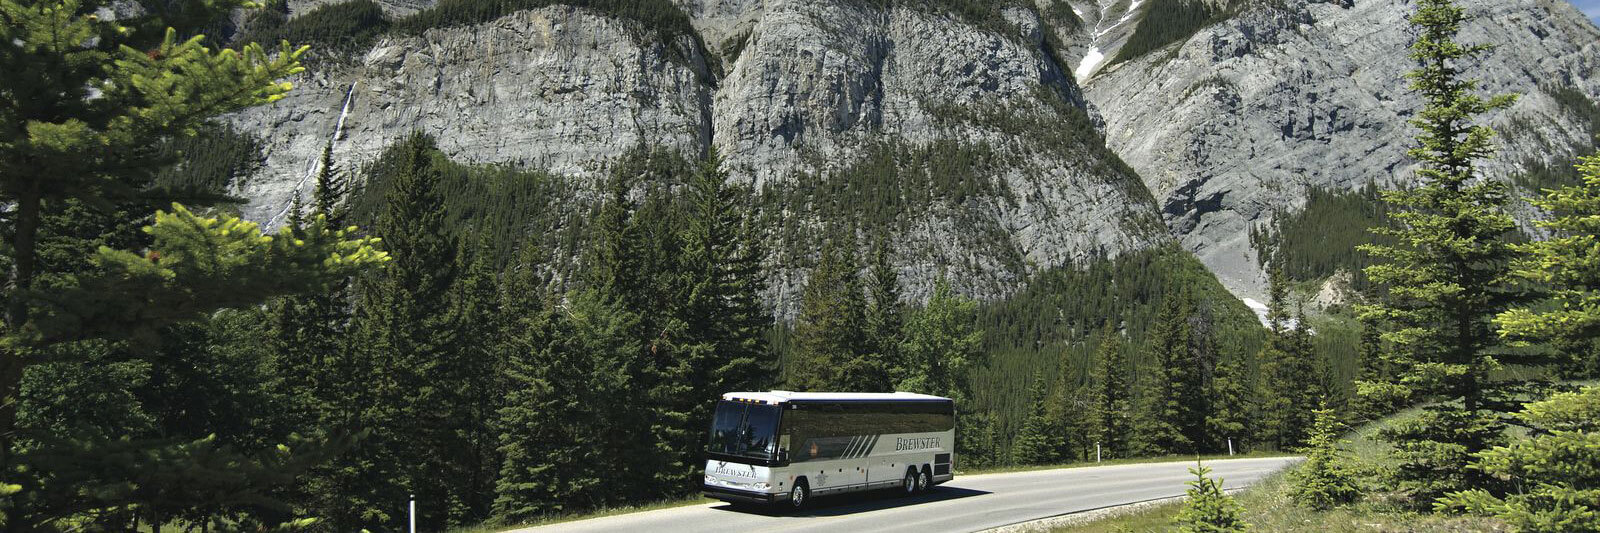 Brewster Motorcoach